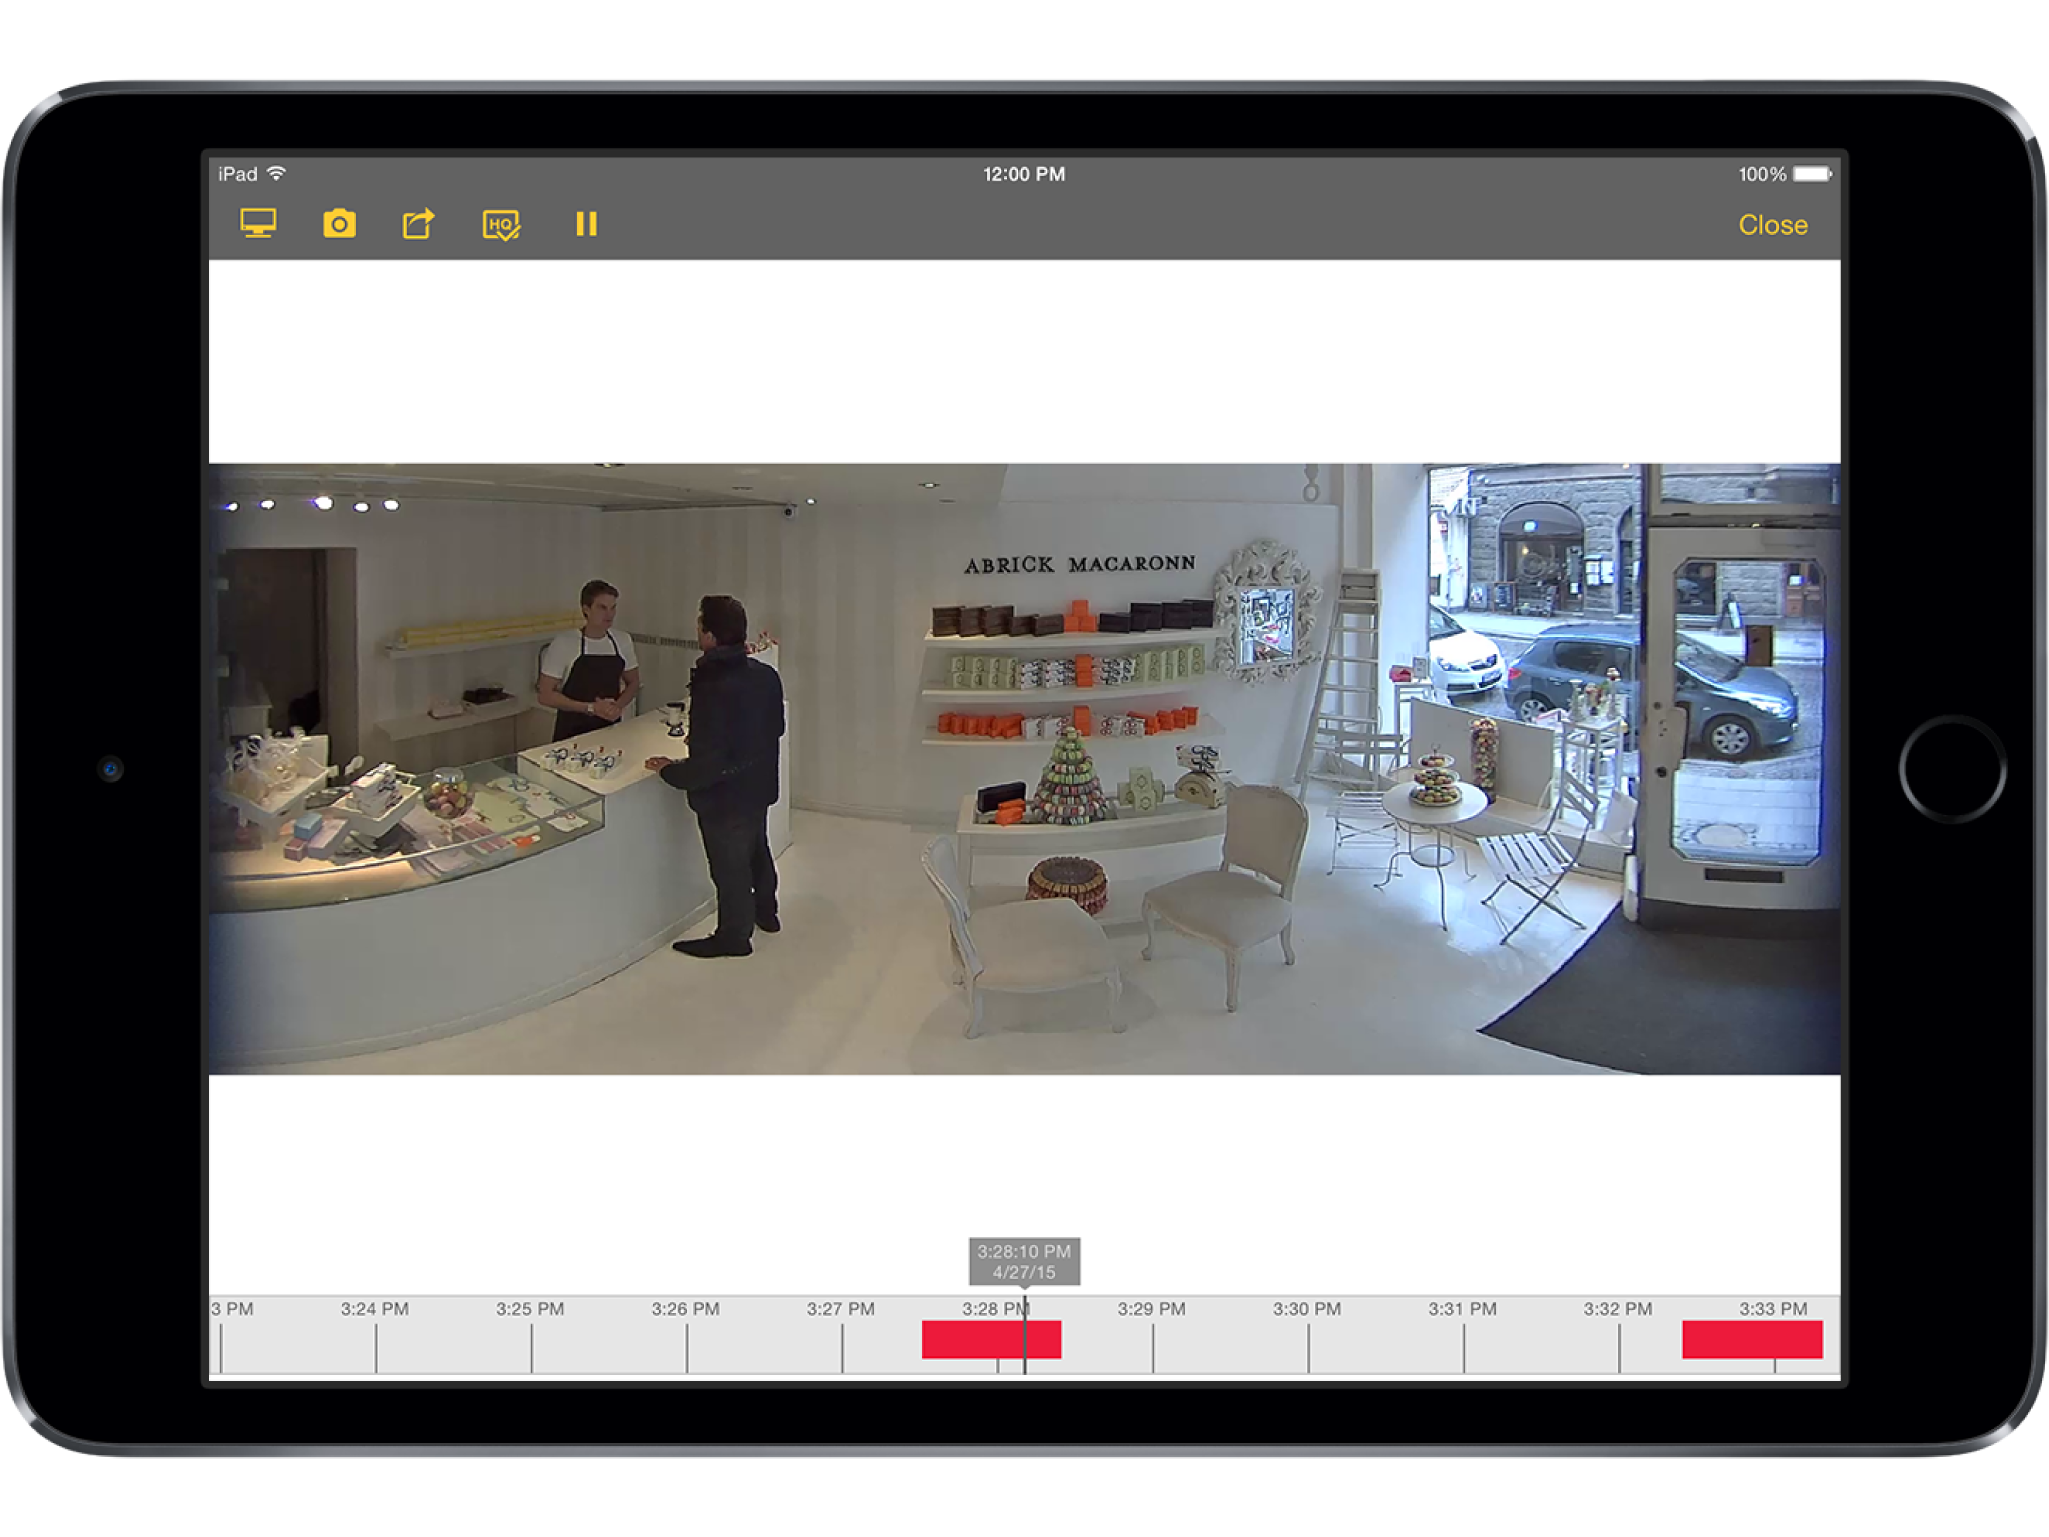 AXIS Camera Companion iPad Air 2 playback